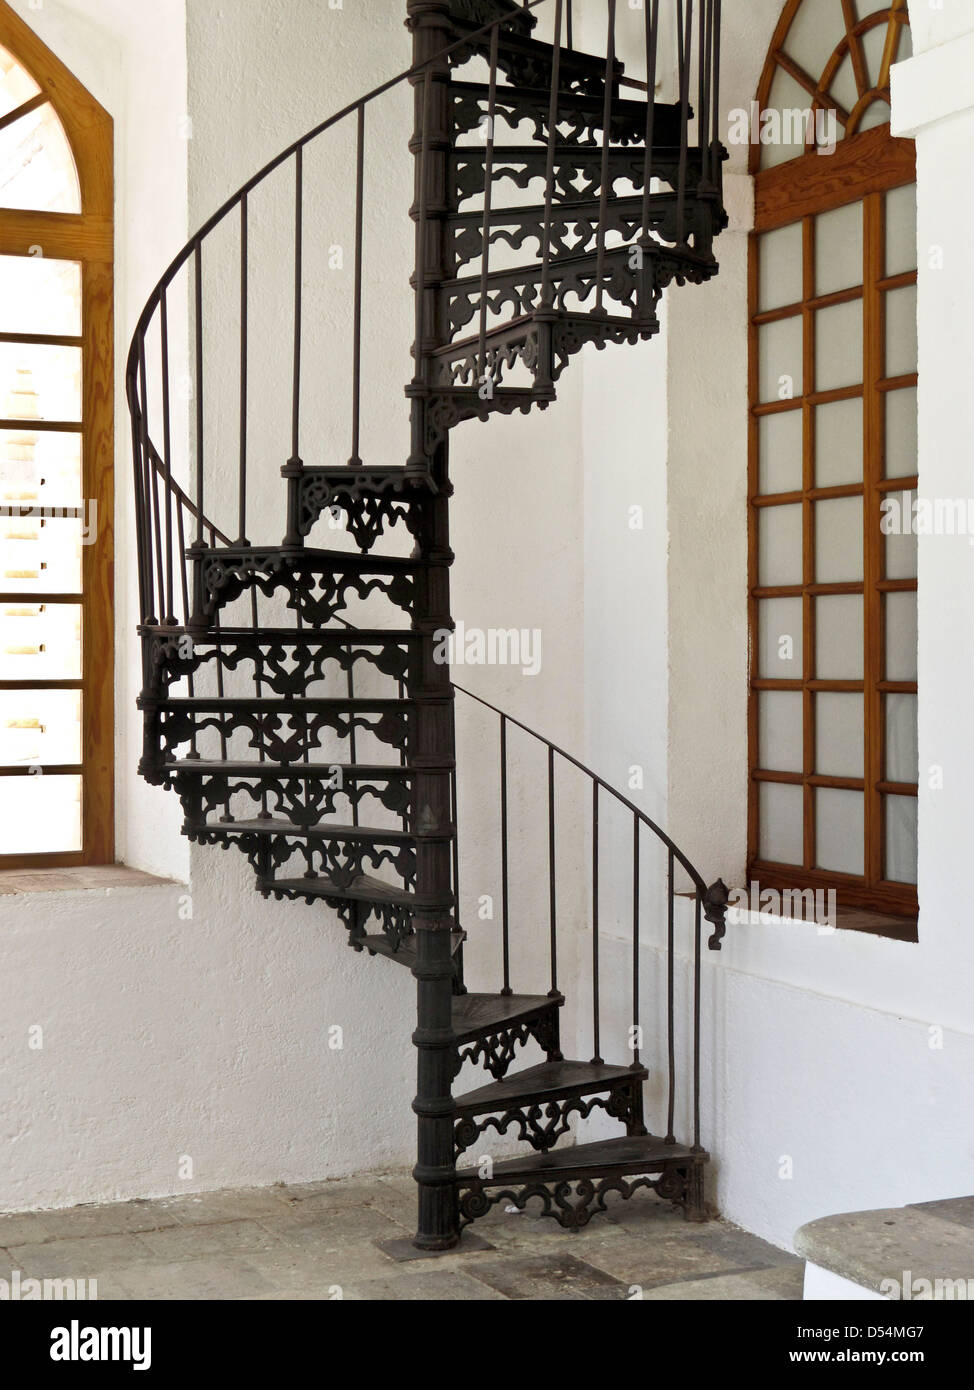 Decorative 19th Century Cast Iron Spiral Stair Between Levels At Textile  Mill Converted To Center For The Arts San Agustin Etla